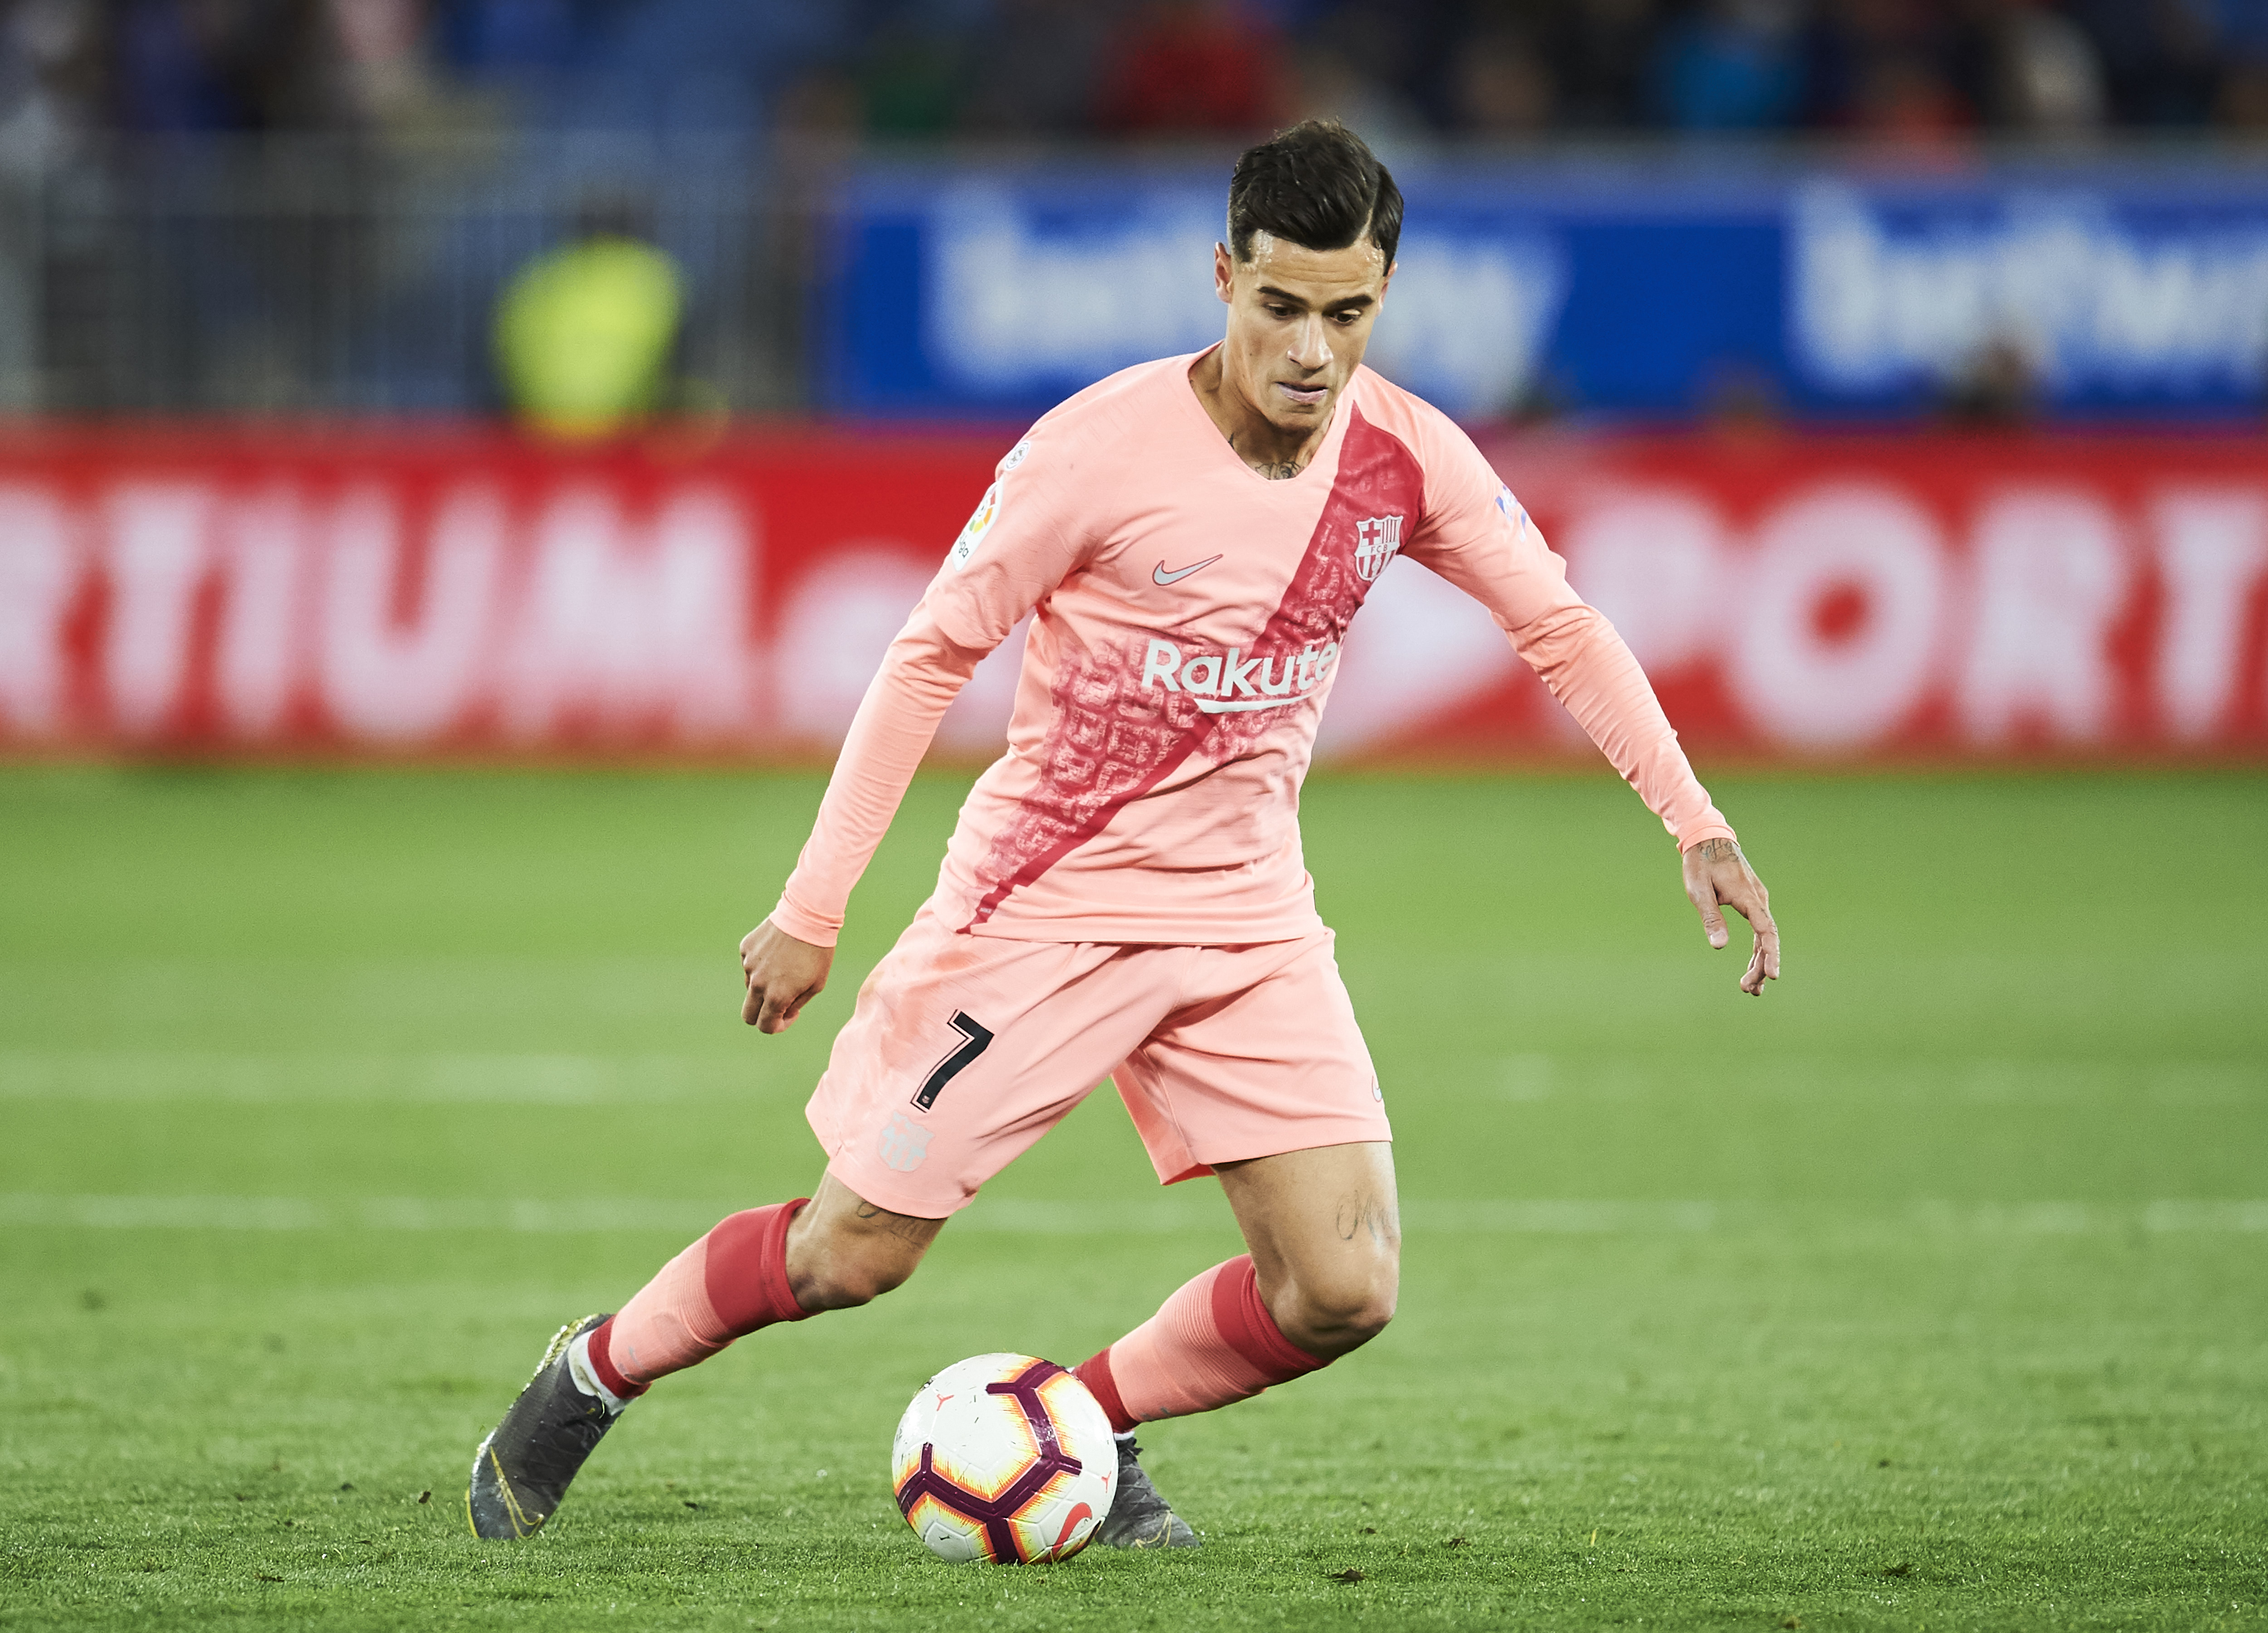 Could Coutinho join Arsenal or Tottenham? (Photo courtesy: AFP/Getty)